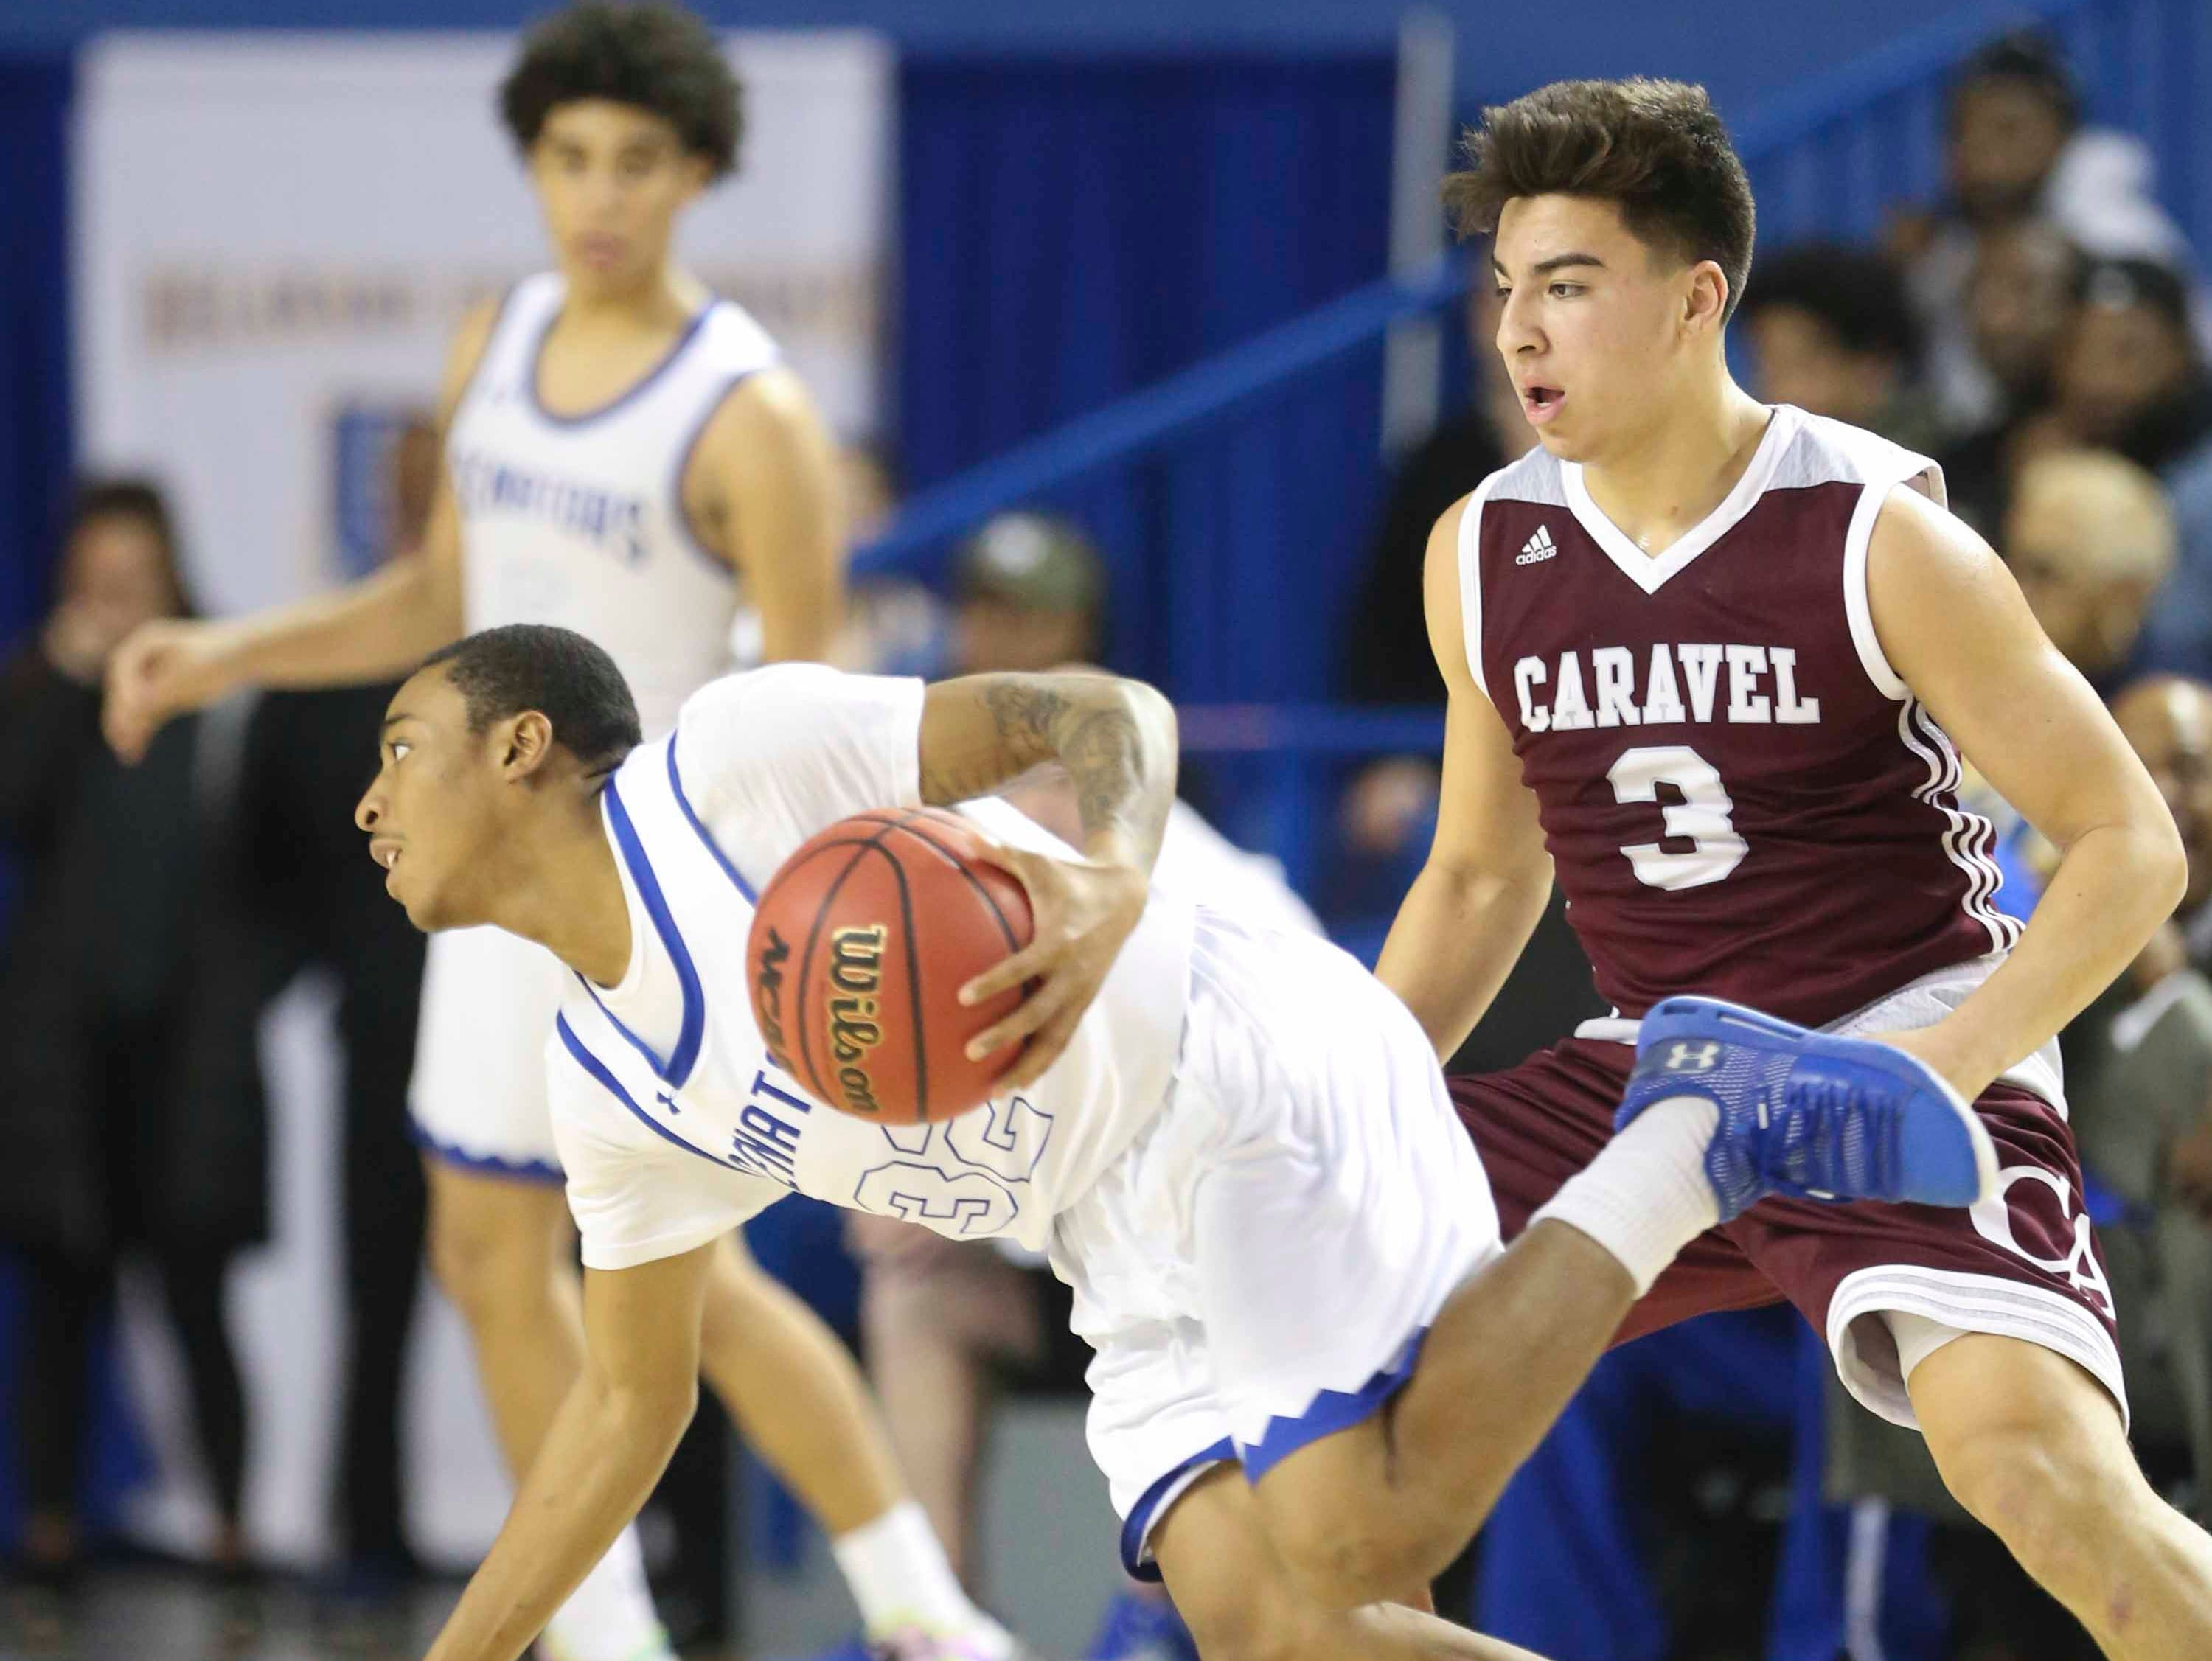 Dover's Wanya Wise (left) dribbles away from Caravel's Brandon Sengphachanh in the second half of Dover's 68-52 win in a DIAA state tournament semifinal at the Bob Carpenter Center Thursday.